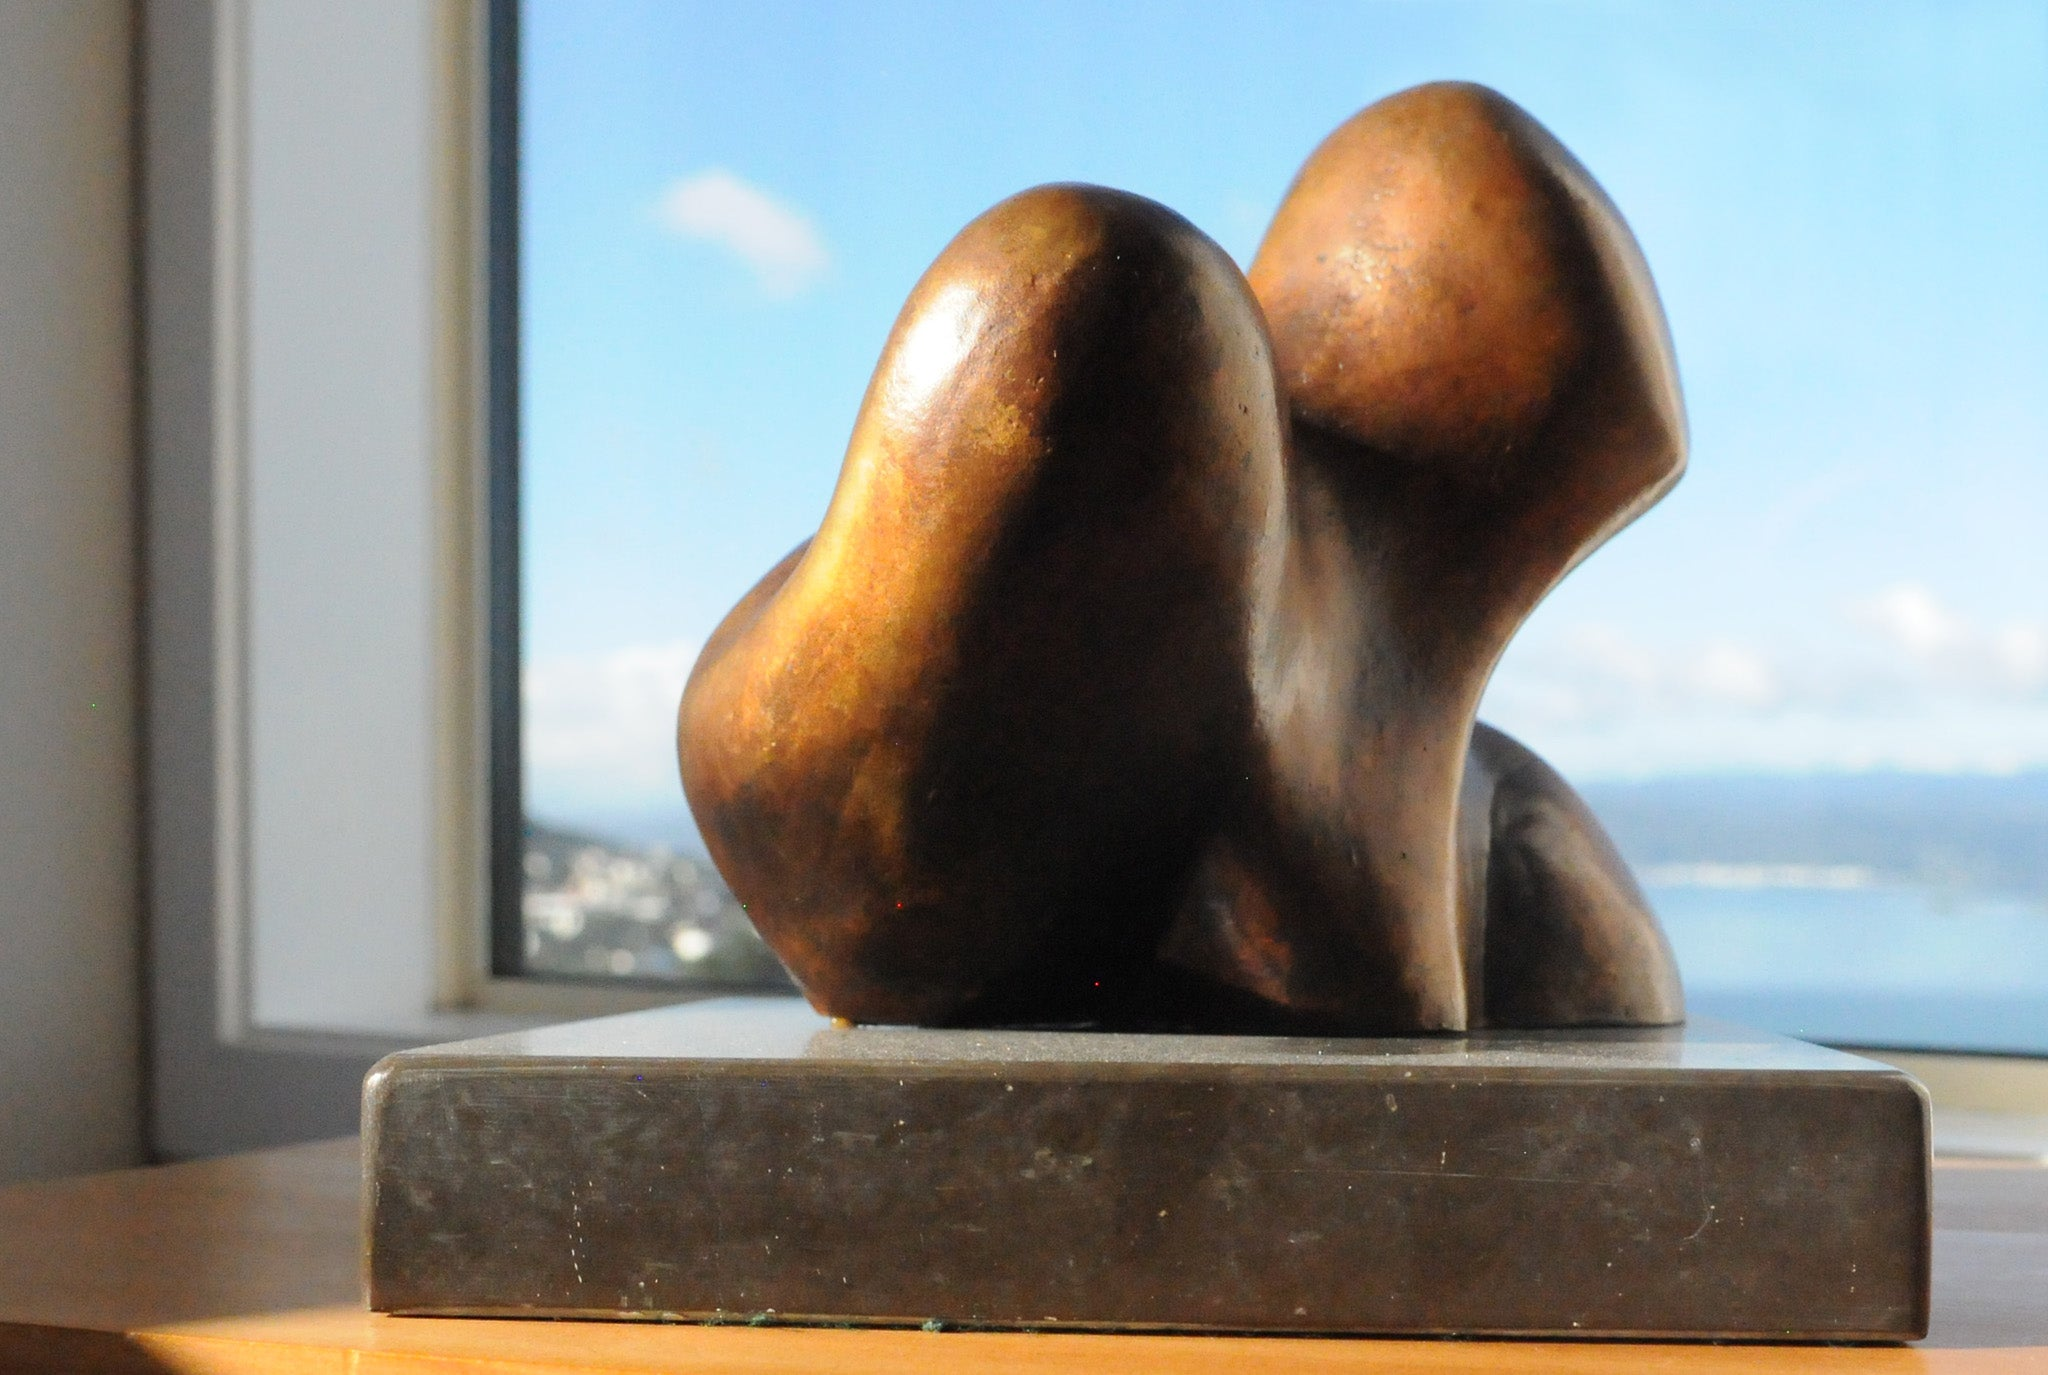 Abstract biomorphic bronze sculpture by Stephen Williams.